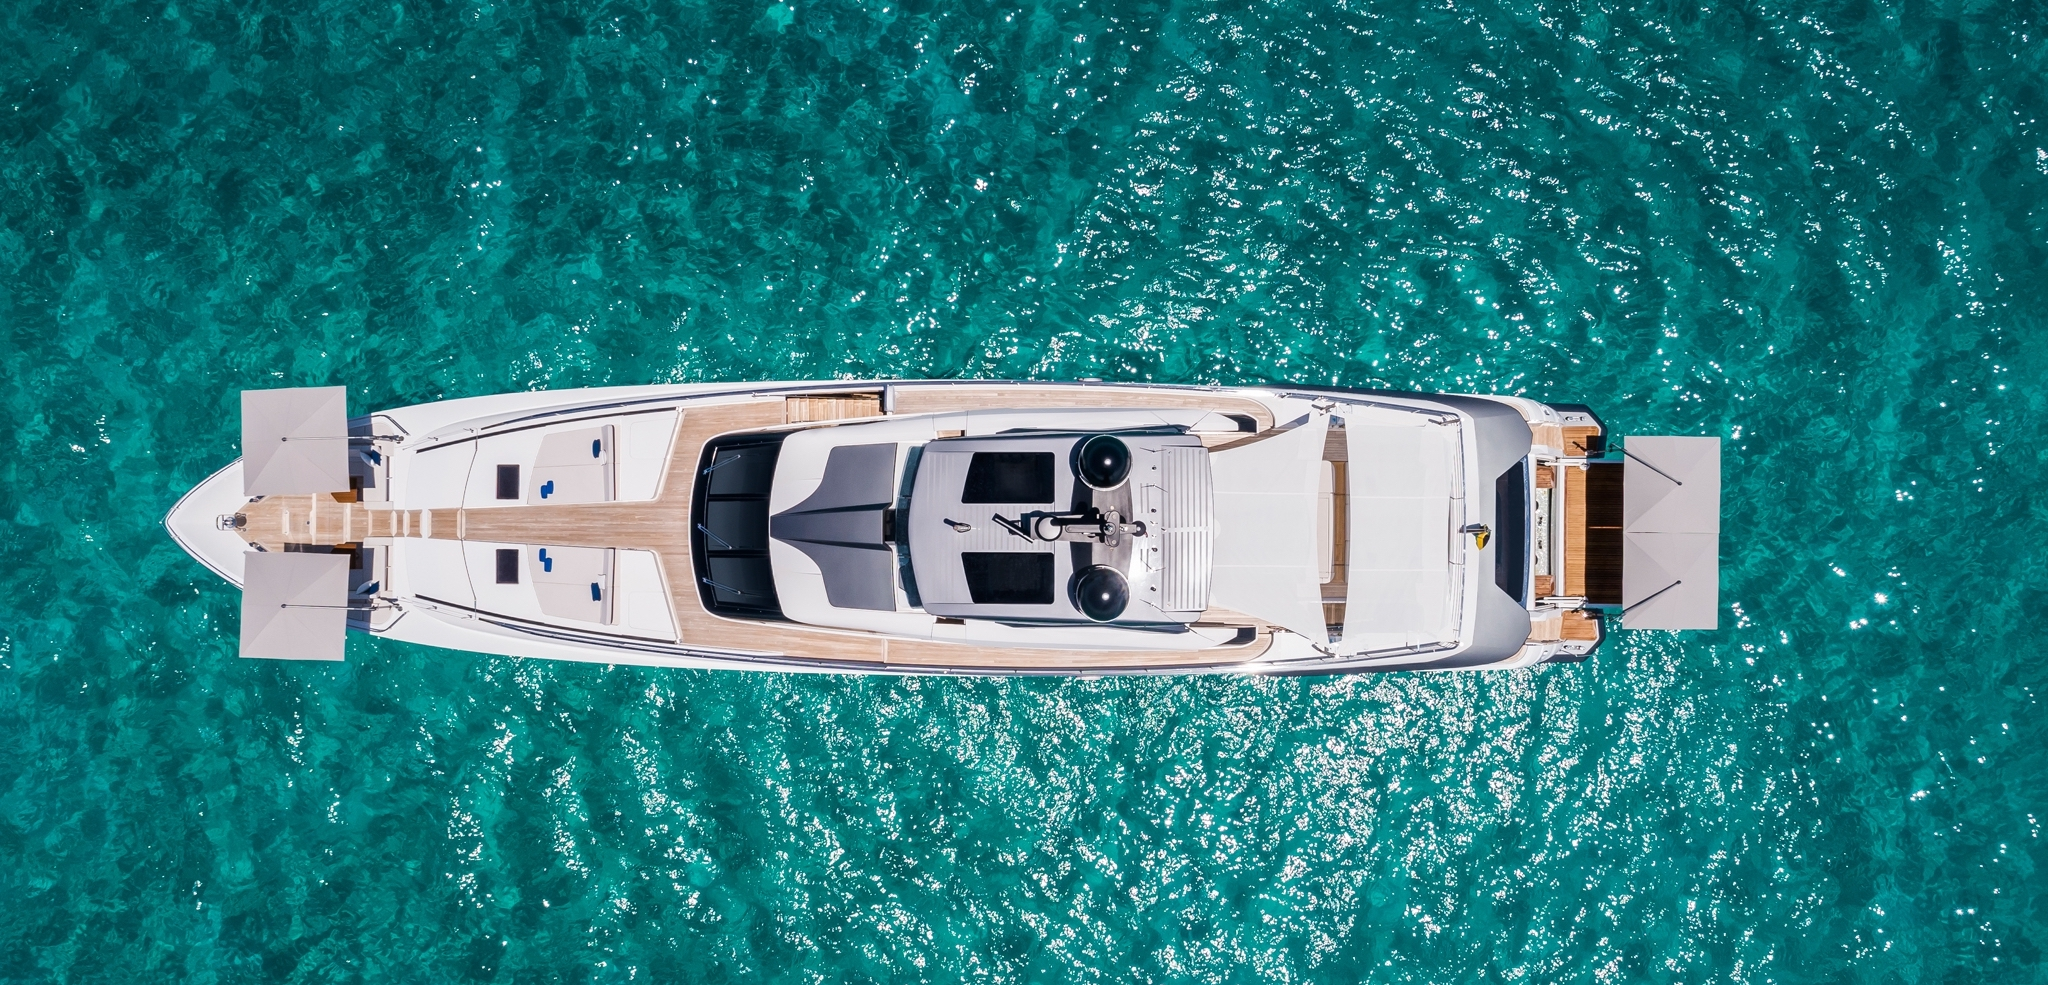 Smooth sailing: Chartering-out your yacht cover